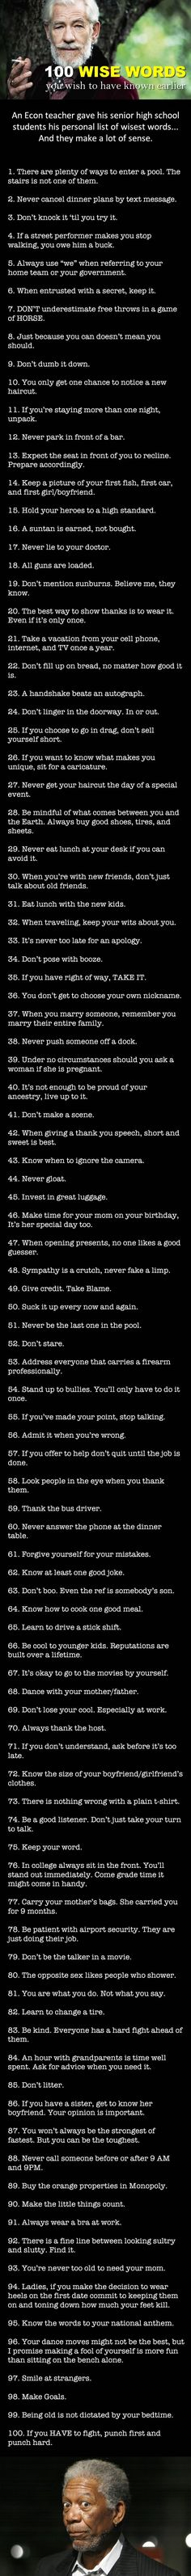 Best thing I have read in a long time. - 9GAG